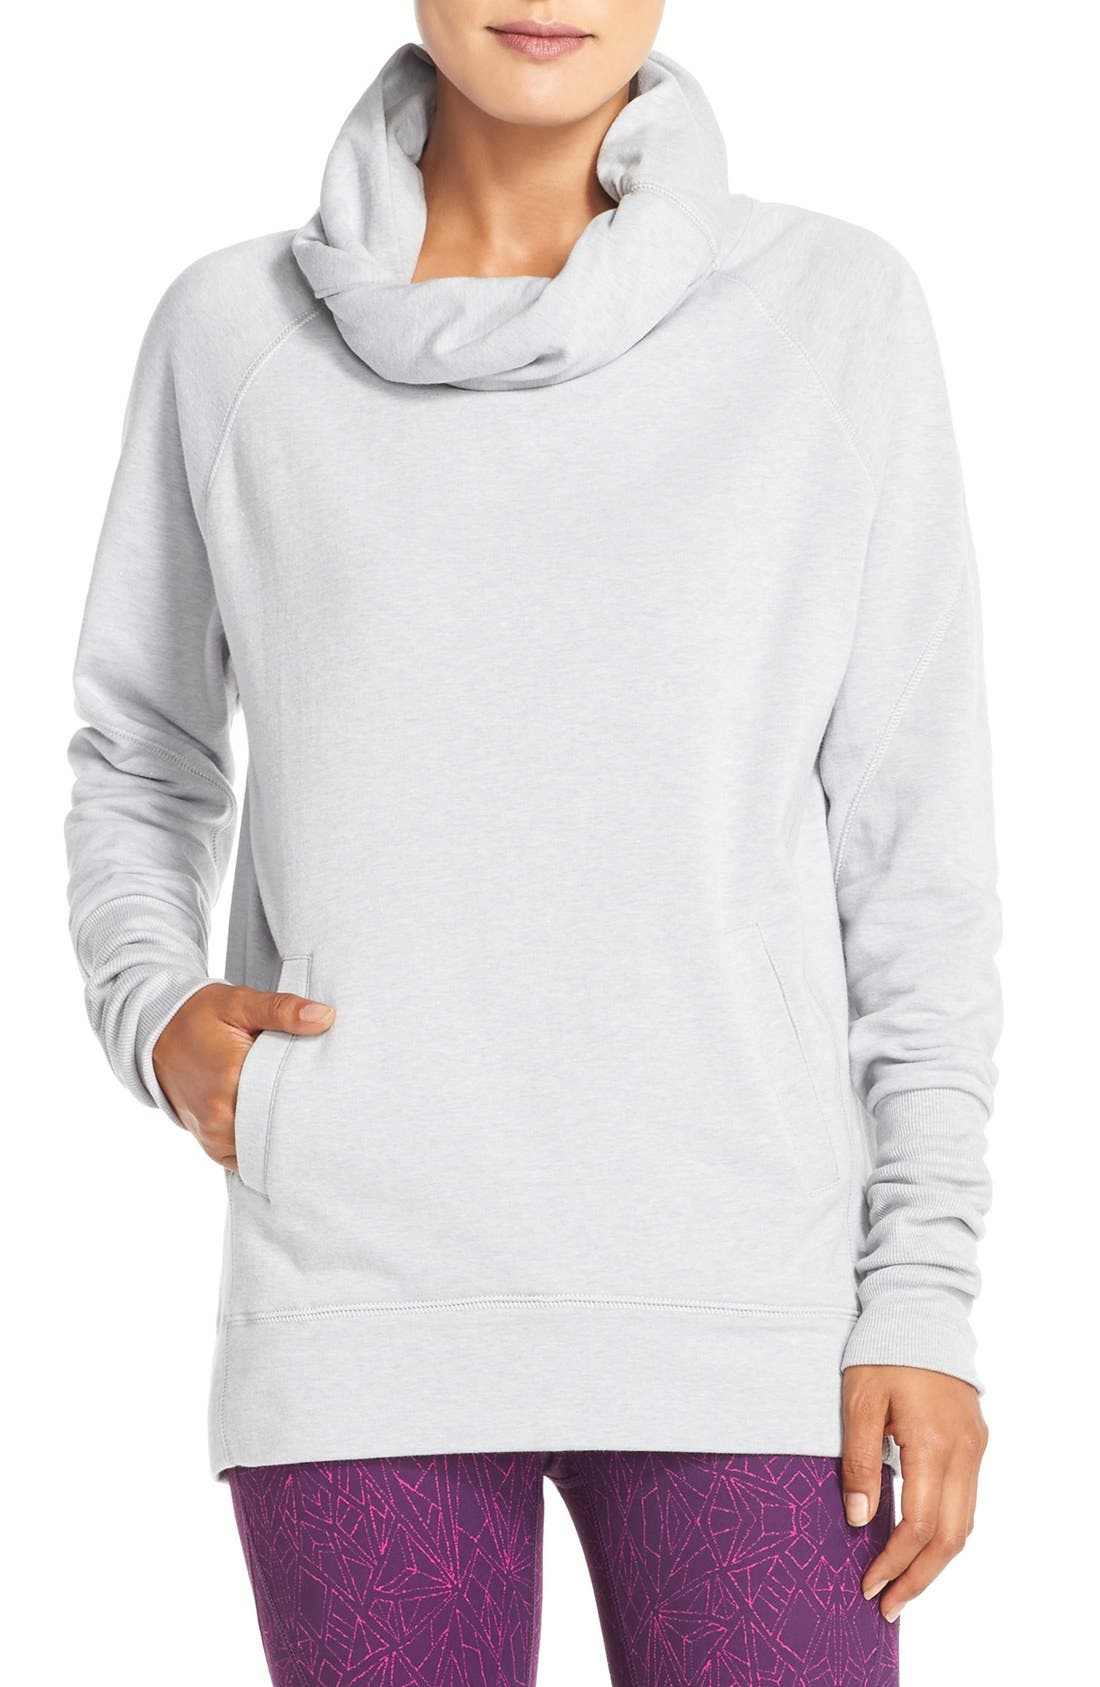 Main Image - Zella 'Inner Peace' Cotton Blend Pullover